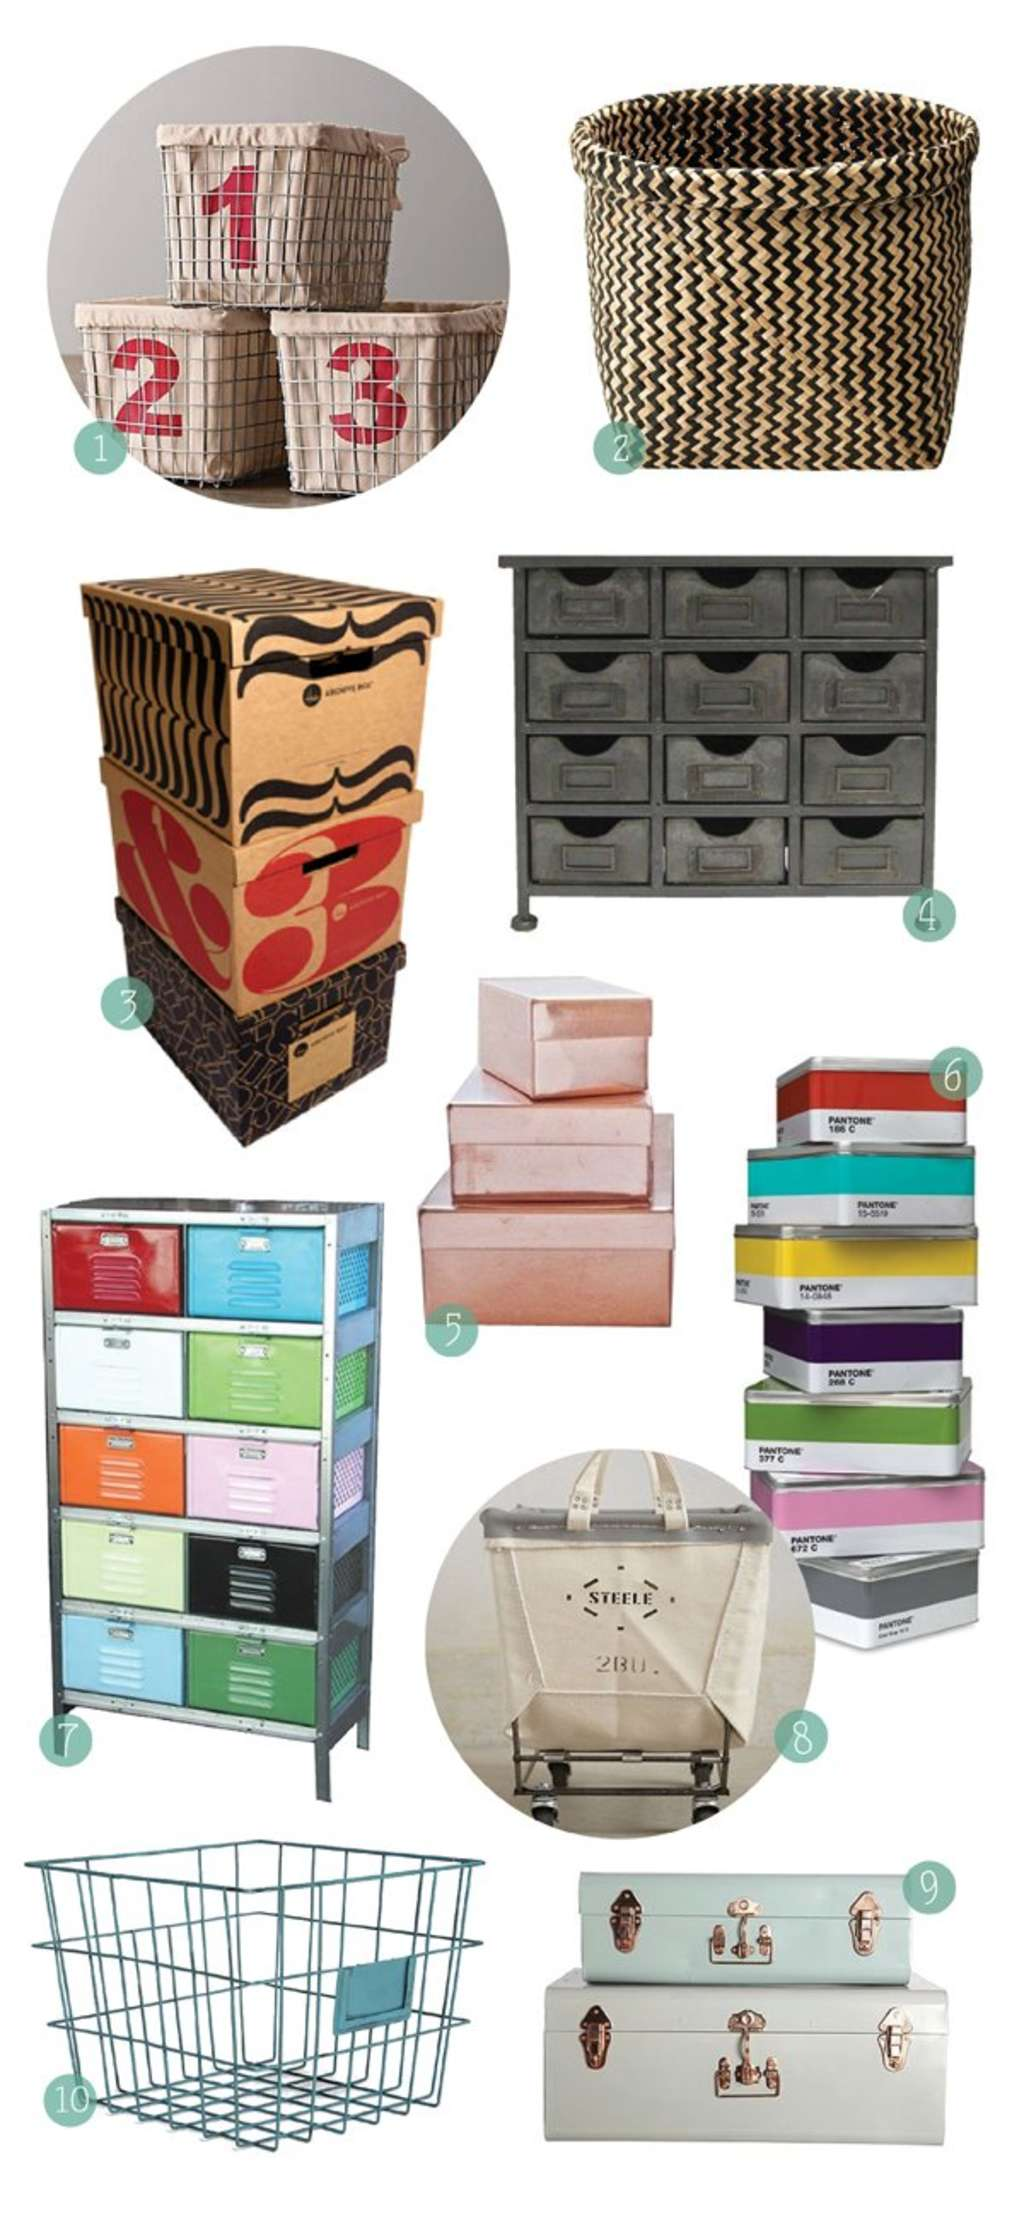 10 Alternatives to Plastic Storage Bins